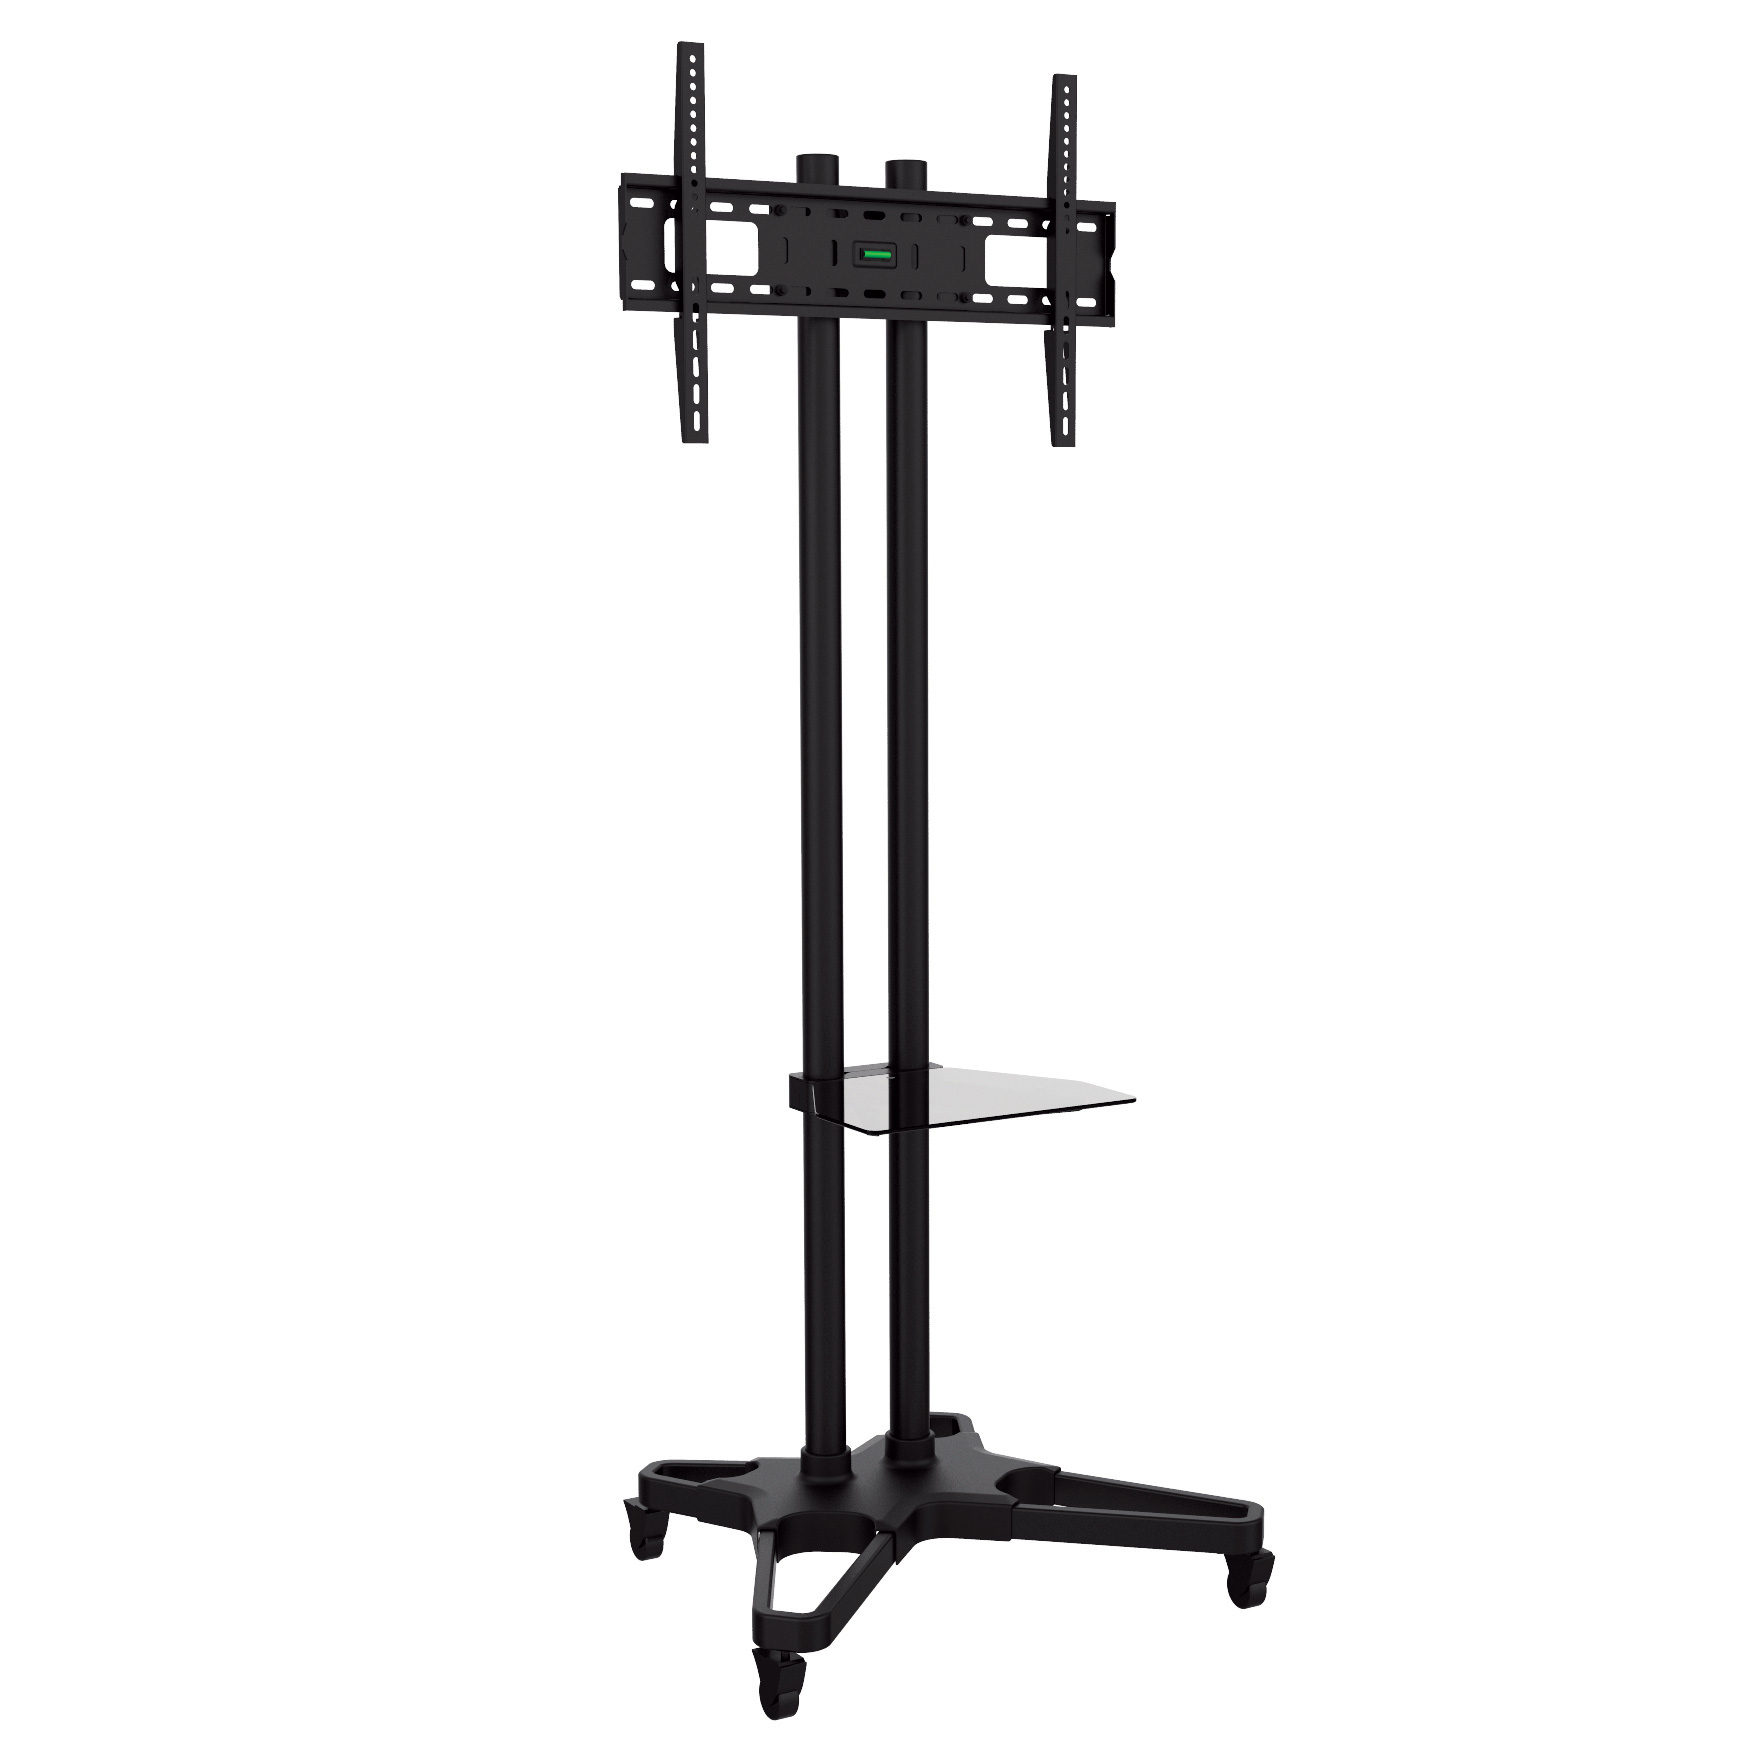 bentley mounts cms 1021b height adjustable mobile tv stand. Black Bedroom Furniture Sets. Home Design Ideas